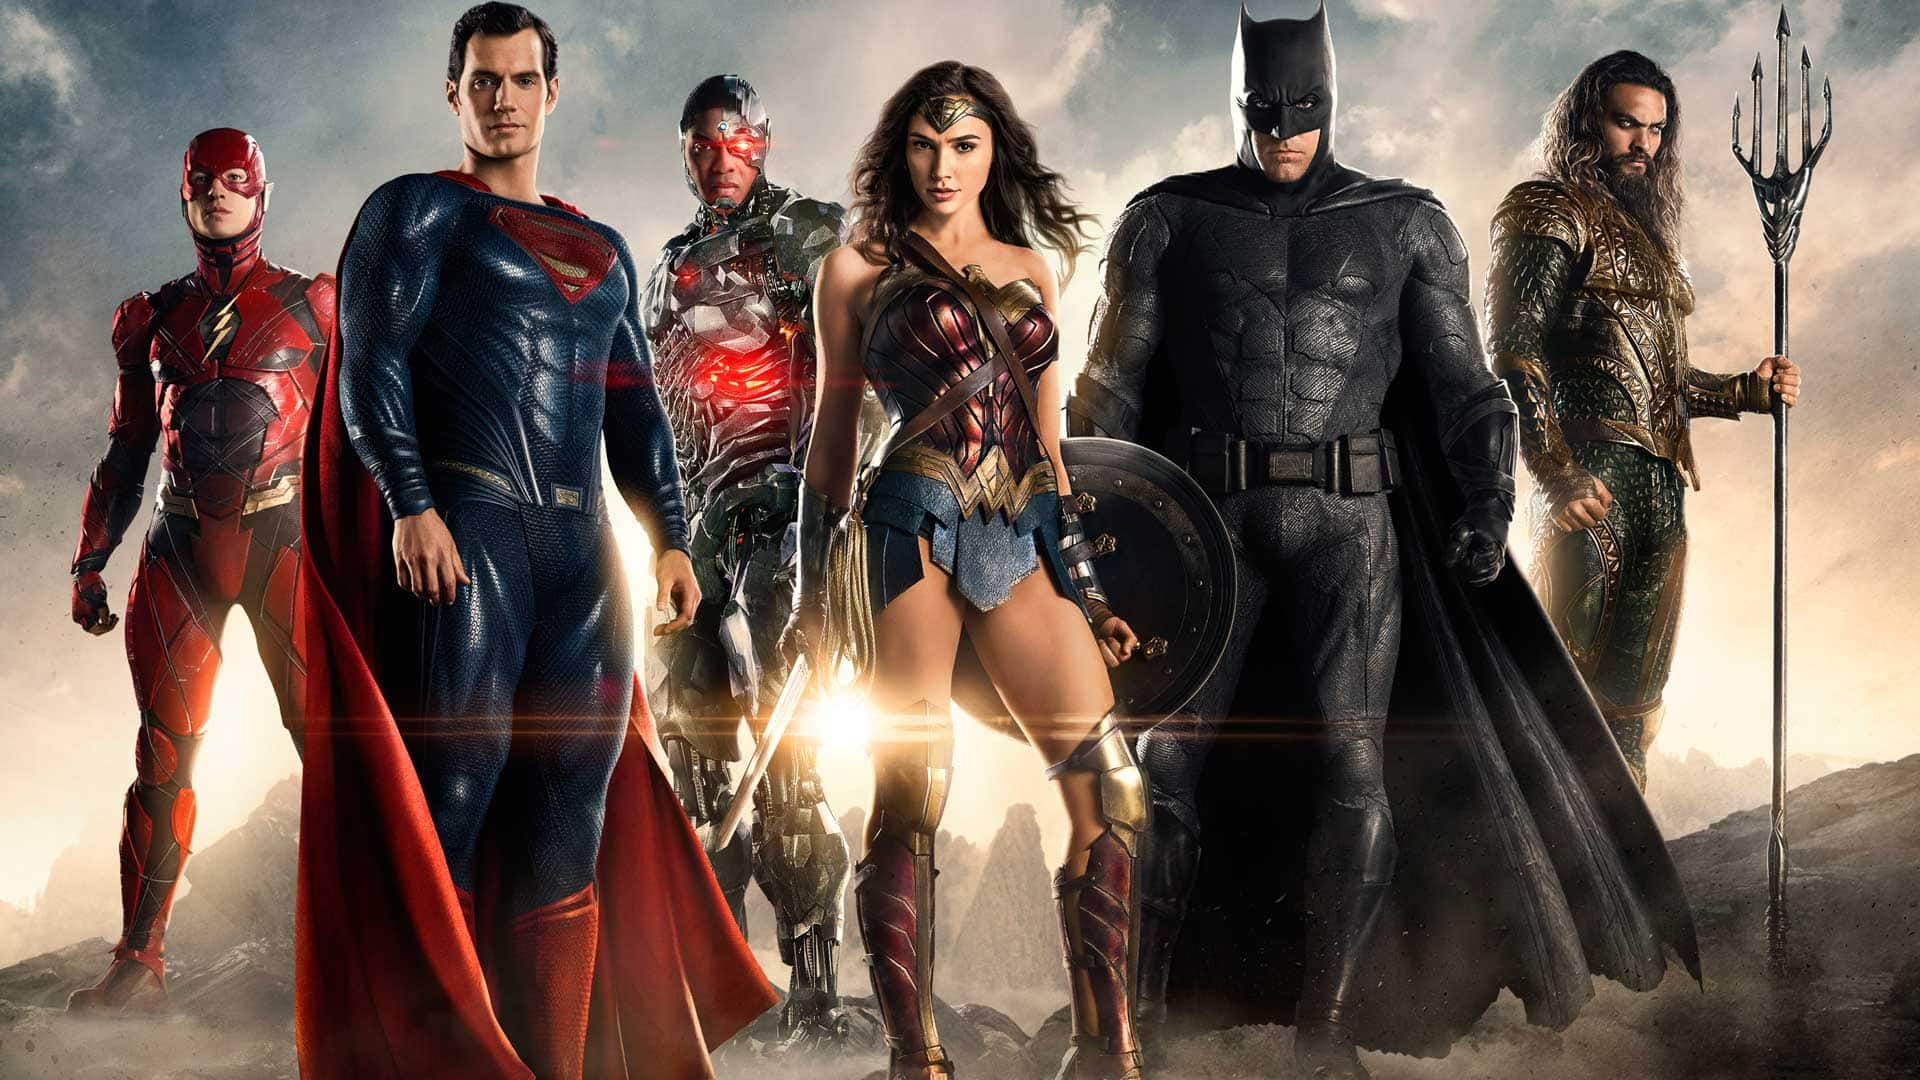 Marvel Vs. DC: Justice League Is Here At Last To Face The Avengers